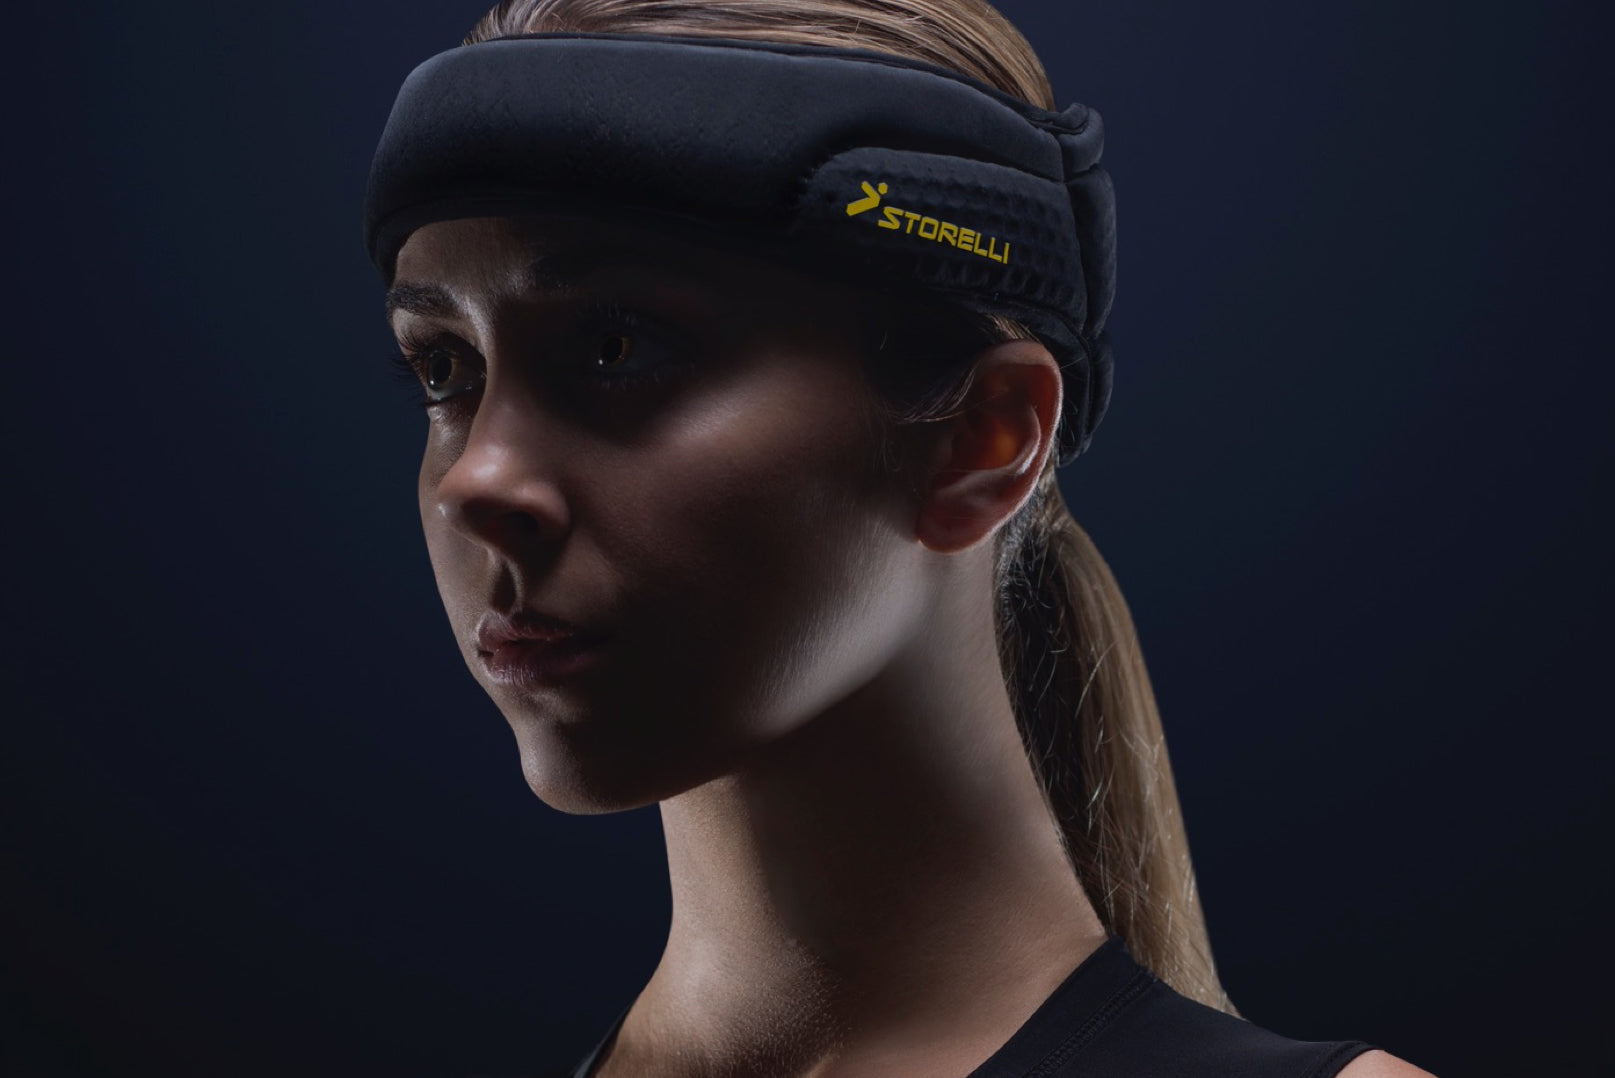 Storelli ExoShield Head Guard provides head protection for girls soccer players